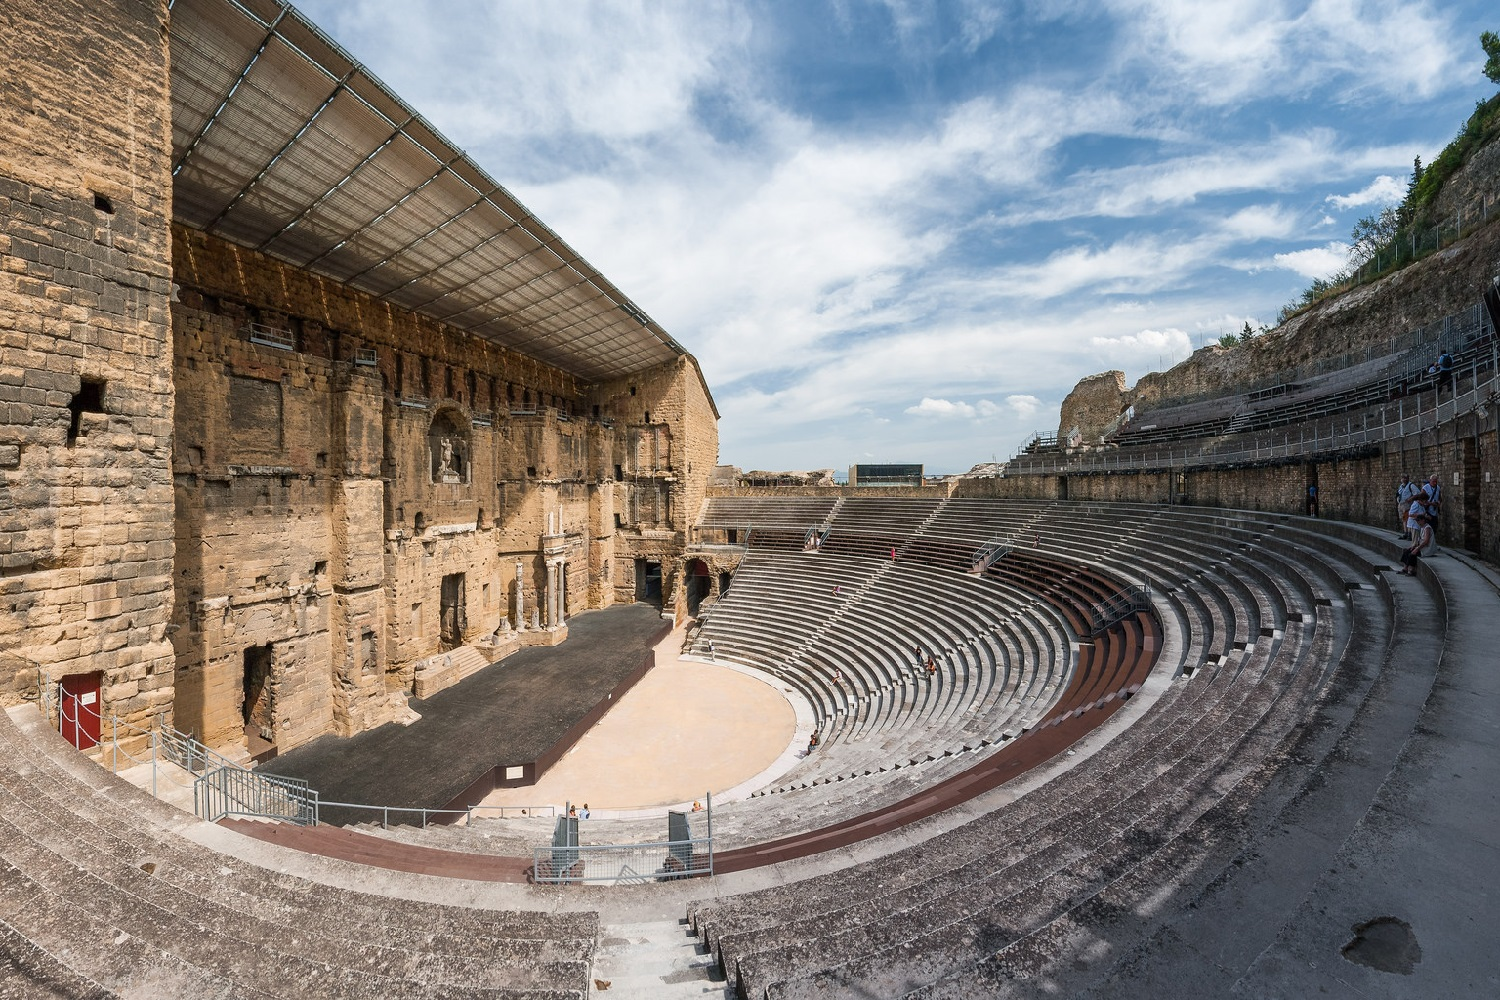 Image of Roman open-air Theatre in Orange, France.